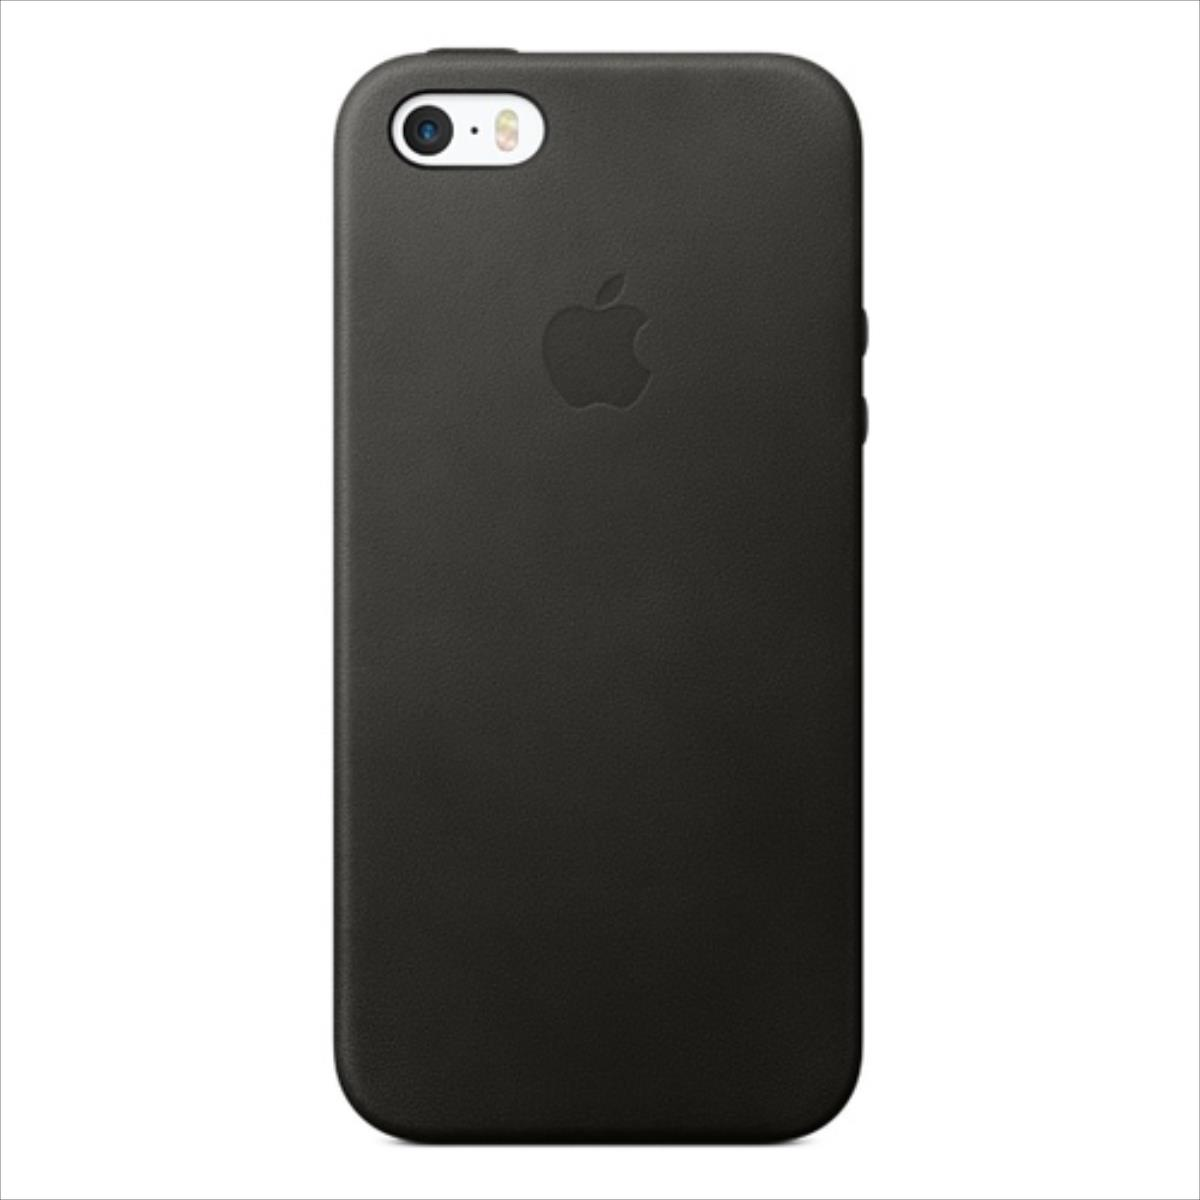 Apple IPHONE SE LEATHER CASE - BLACK - MMHH2ZM/A maciņš, apvalks mobilajam telefonam